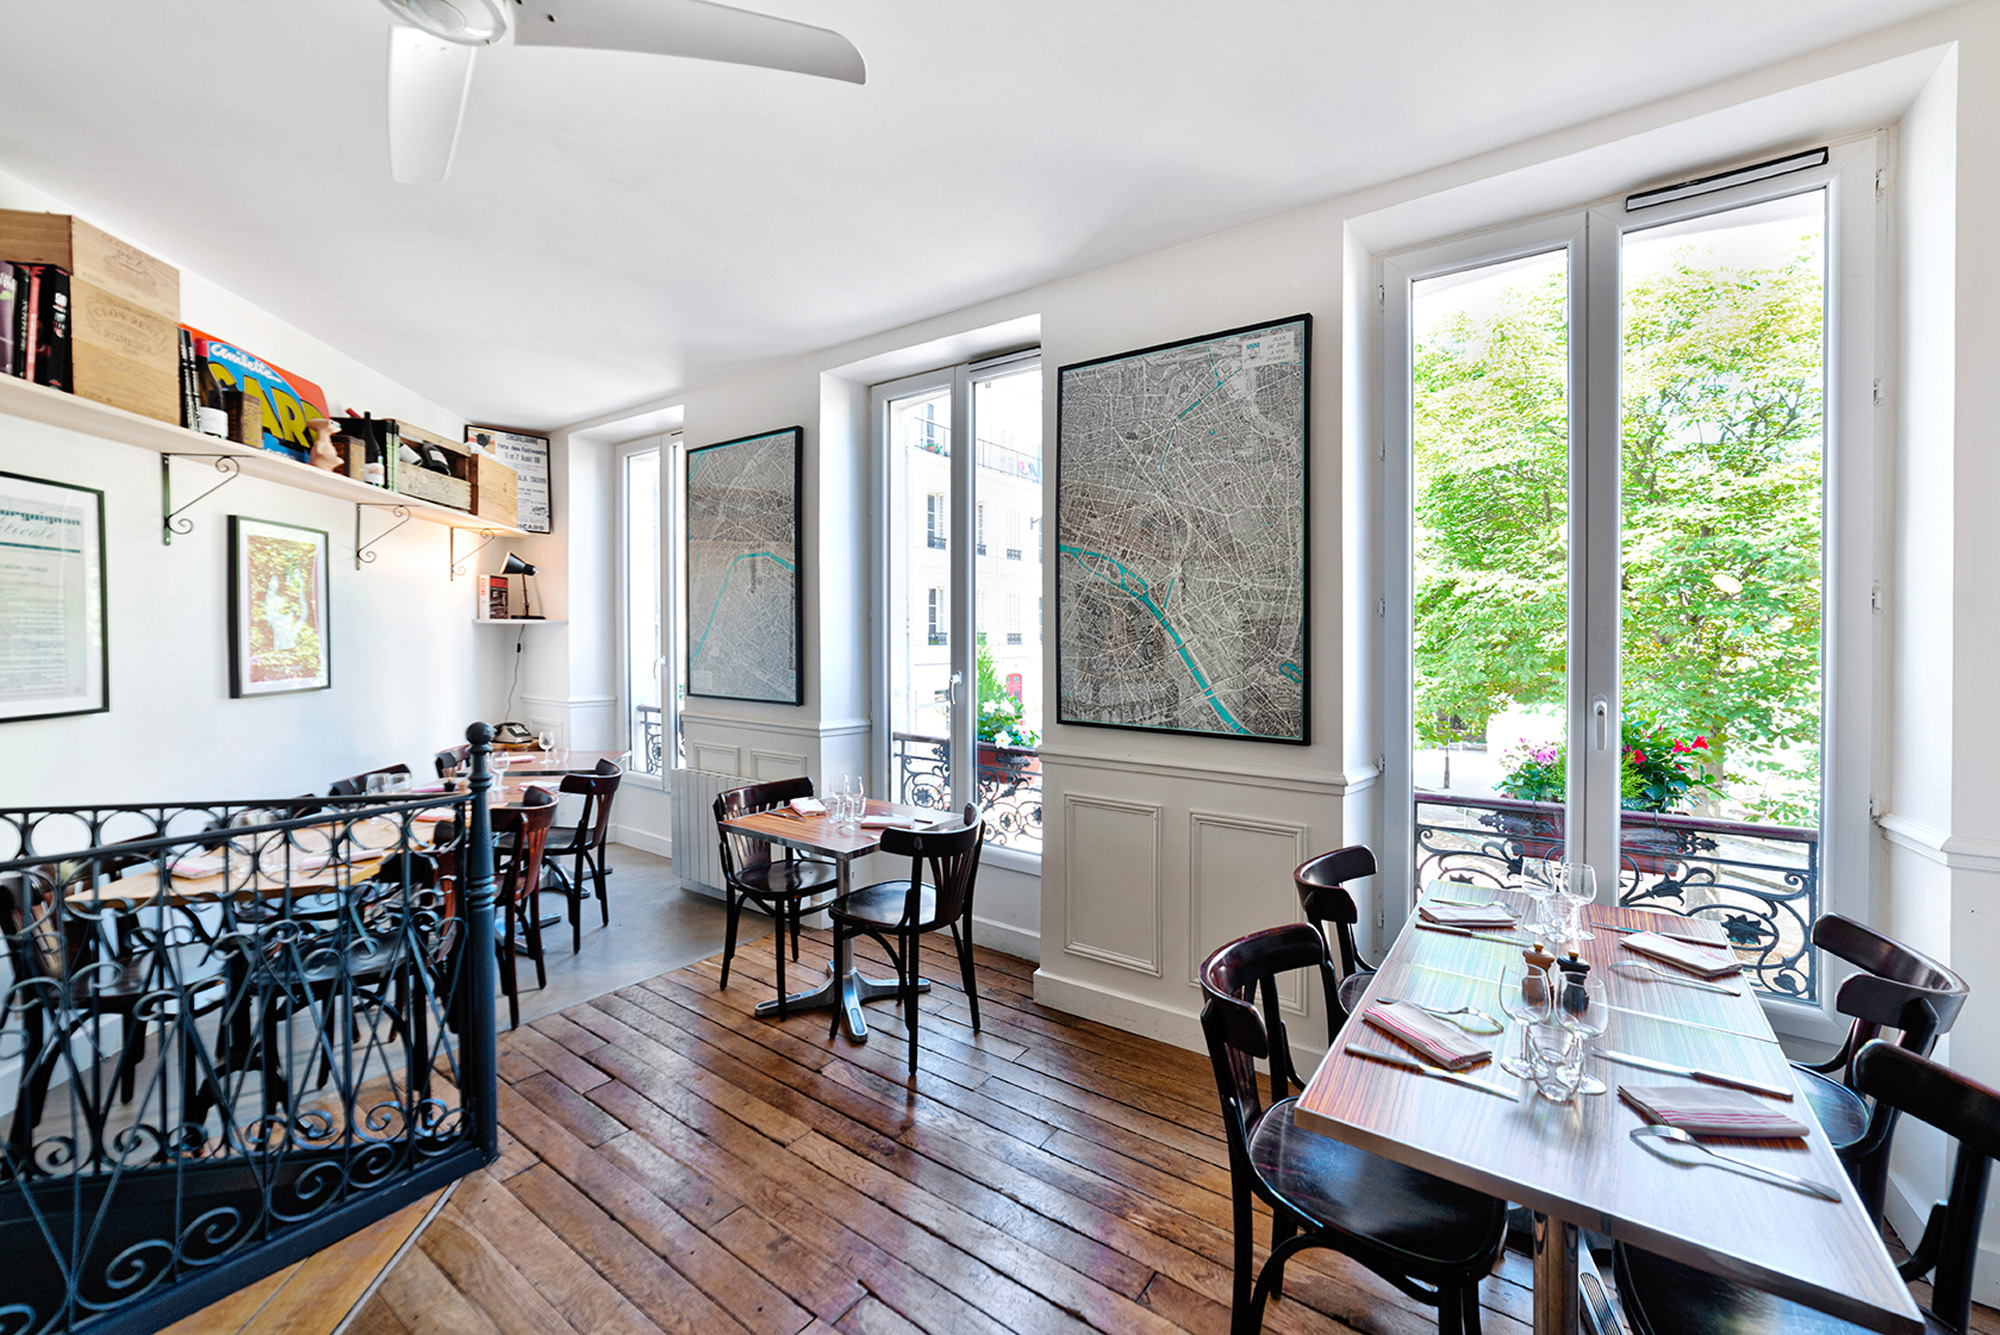 lesperessifleurs-restaurant-paris-bistronomie-slider-home